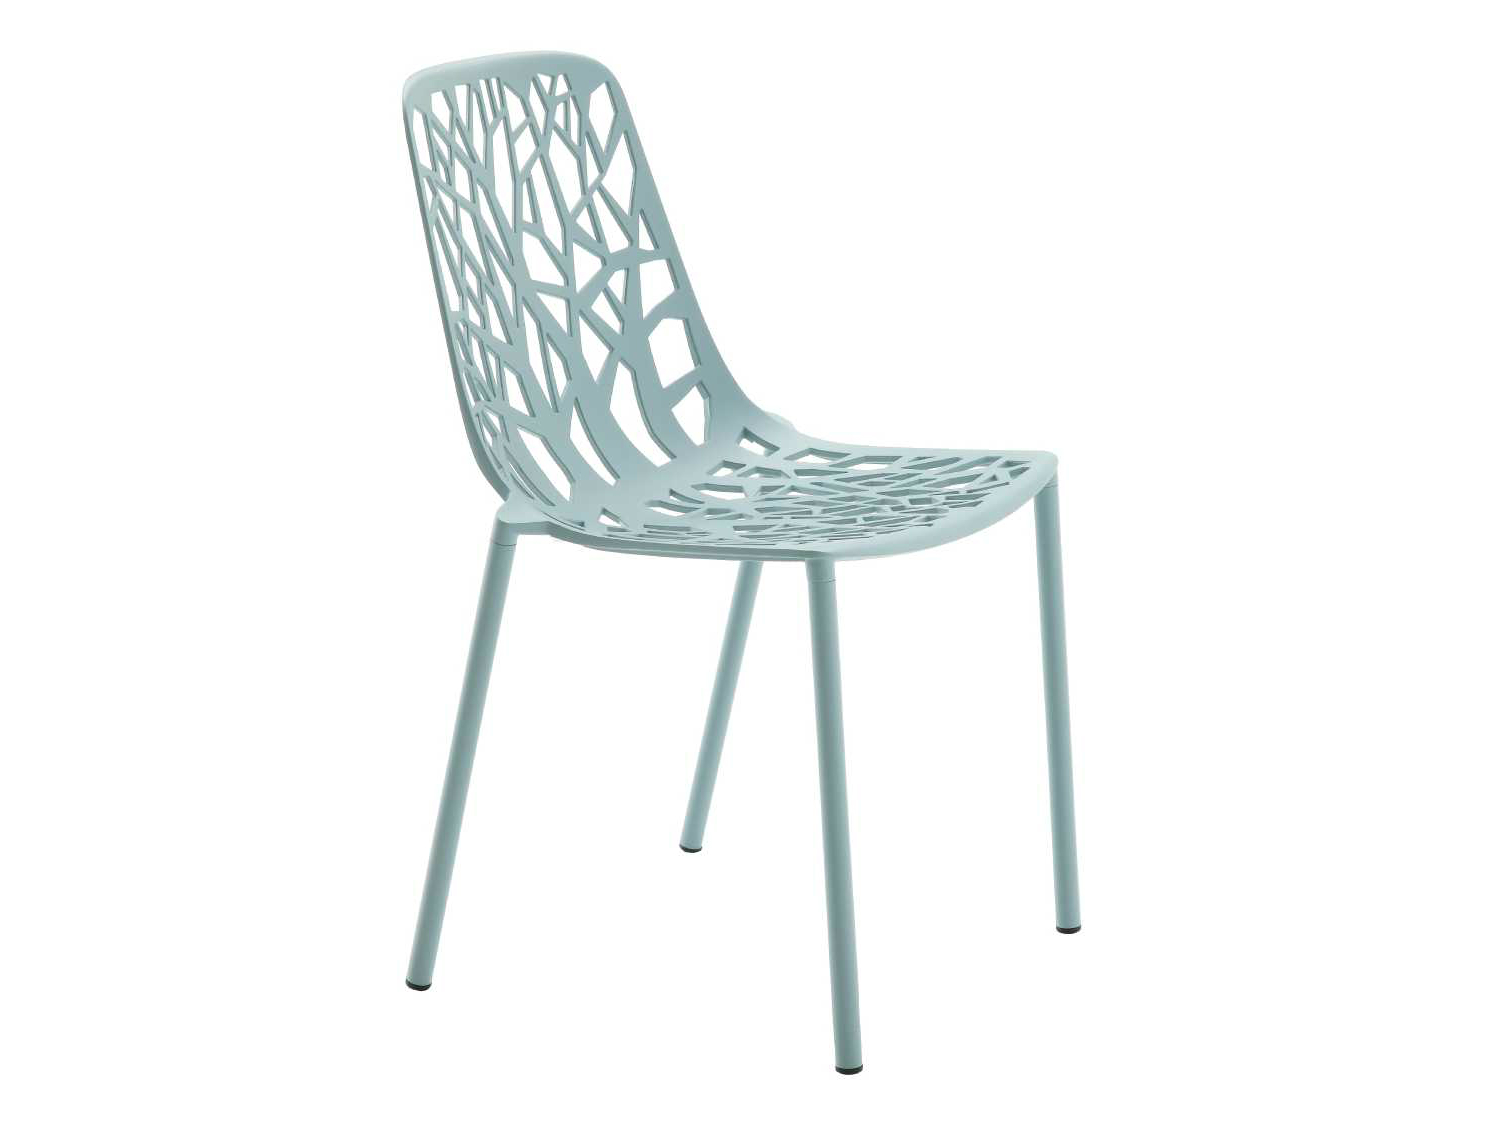 Fast-forest-chair-lightblue-def